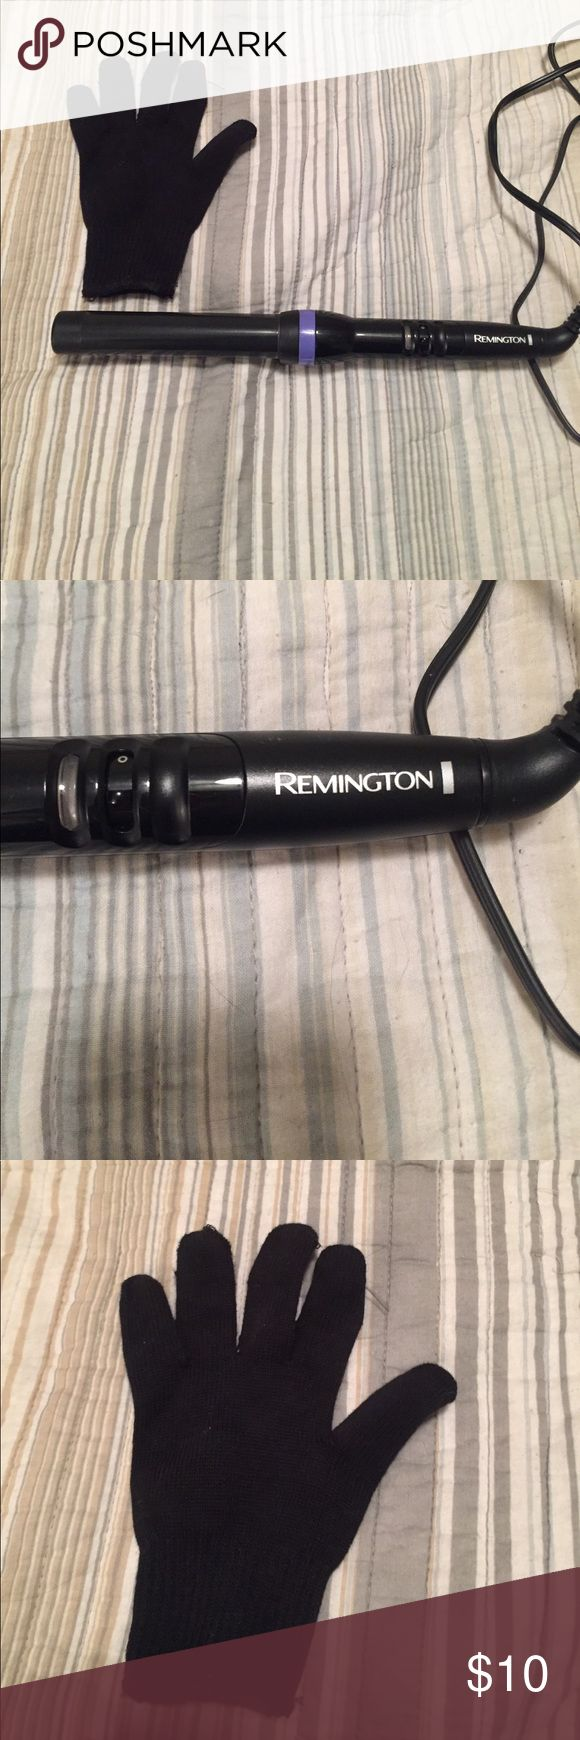 Remington curling wand This is a fairly new Remington curling wand without the clip that a normal curling iron has. It comes with a heat protective glove since it has no clip. I used this maybe 2 or 3 times, and just couldn't get the hang of how to use it. It works just fine, just not my thing. remington Accessories Hair Accessories